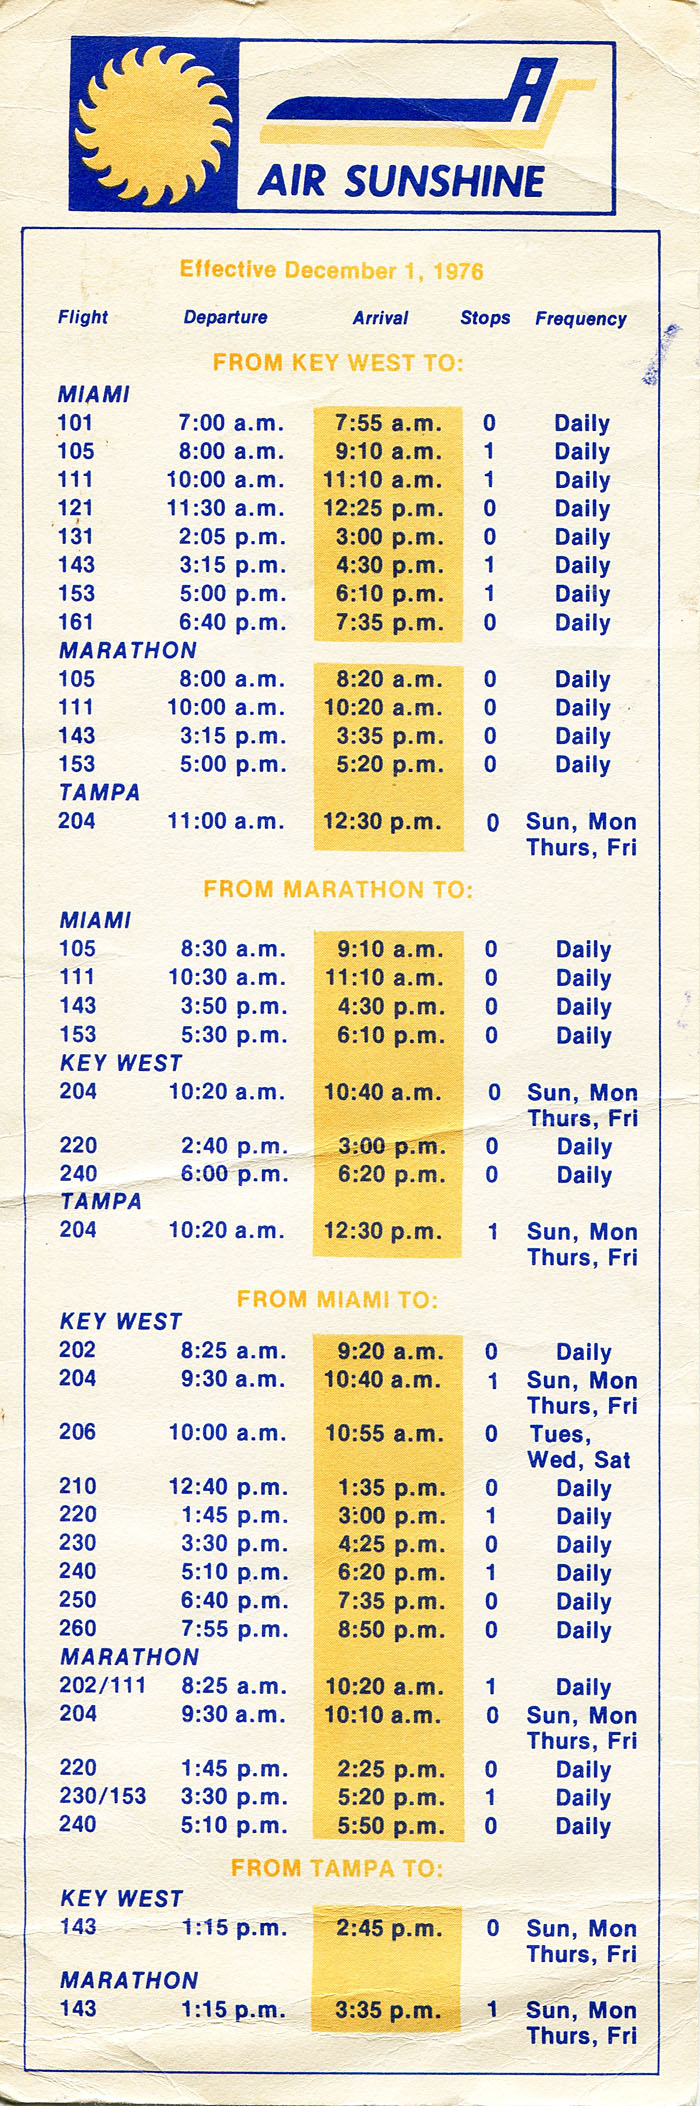 Air Sunshine timetable